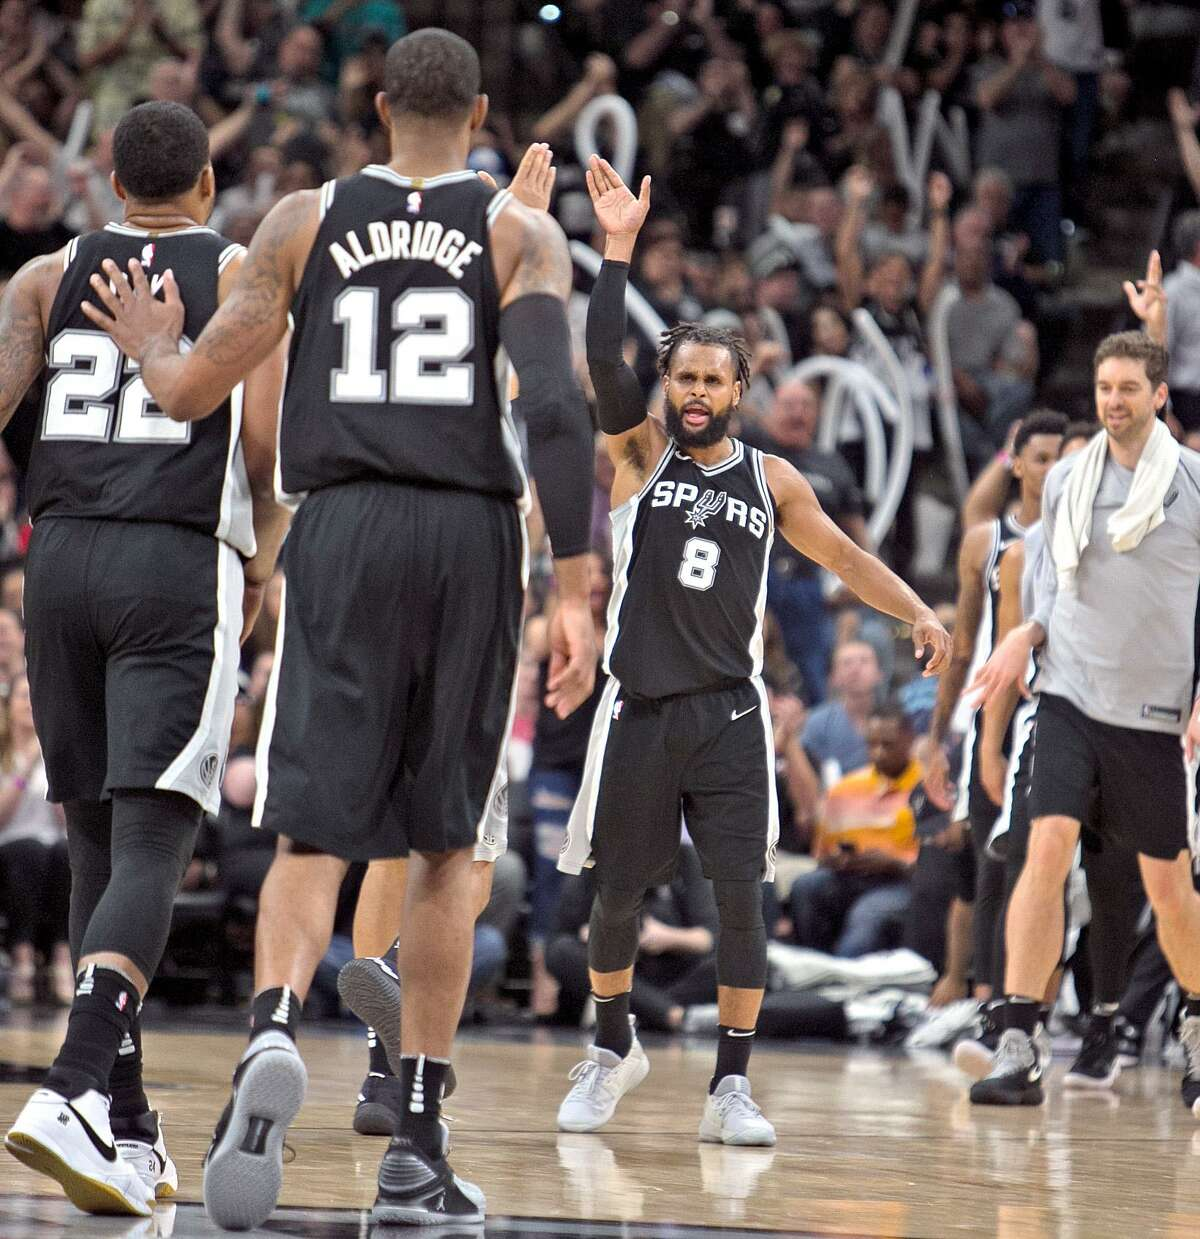 SAN ANTONIO,TX - APRIL 1 : Patty Mills #8 of the San Antonio Spurs celebrats with teammates after hitting a three at AT&T Center on April 1 , 2018 in San Antonio, Texas. NOTE TO USER: User expressly acknowledges and agrees that , by downloading and or using this photograph, User is consenting to the terms and conditions of the Getty Images License Agreement. (Photo by Ronald Cortes/Getty Images)